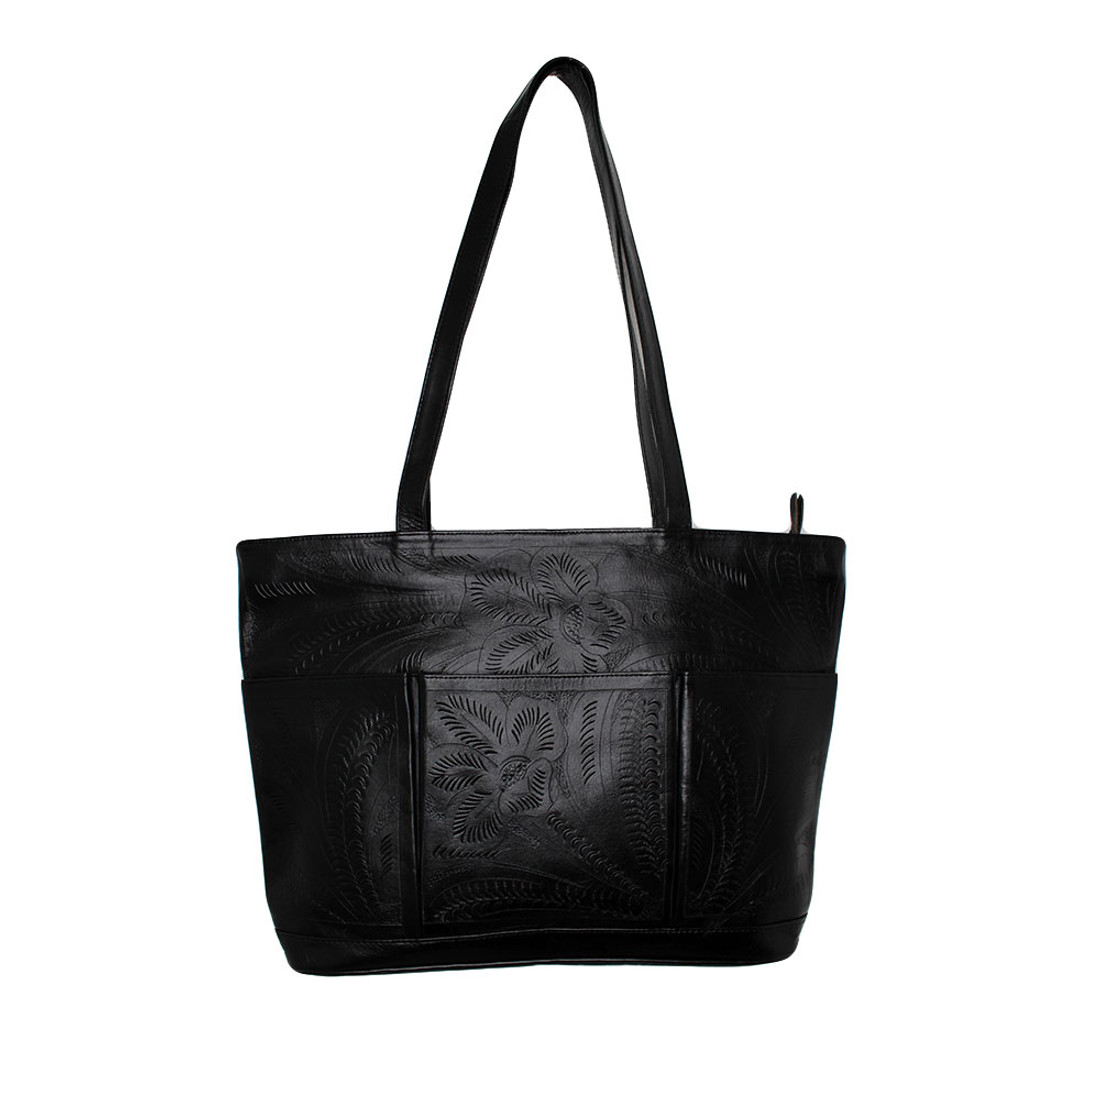 Large black handmade tote purse by Leaders in Leather.